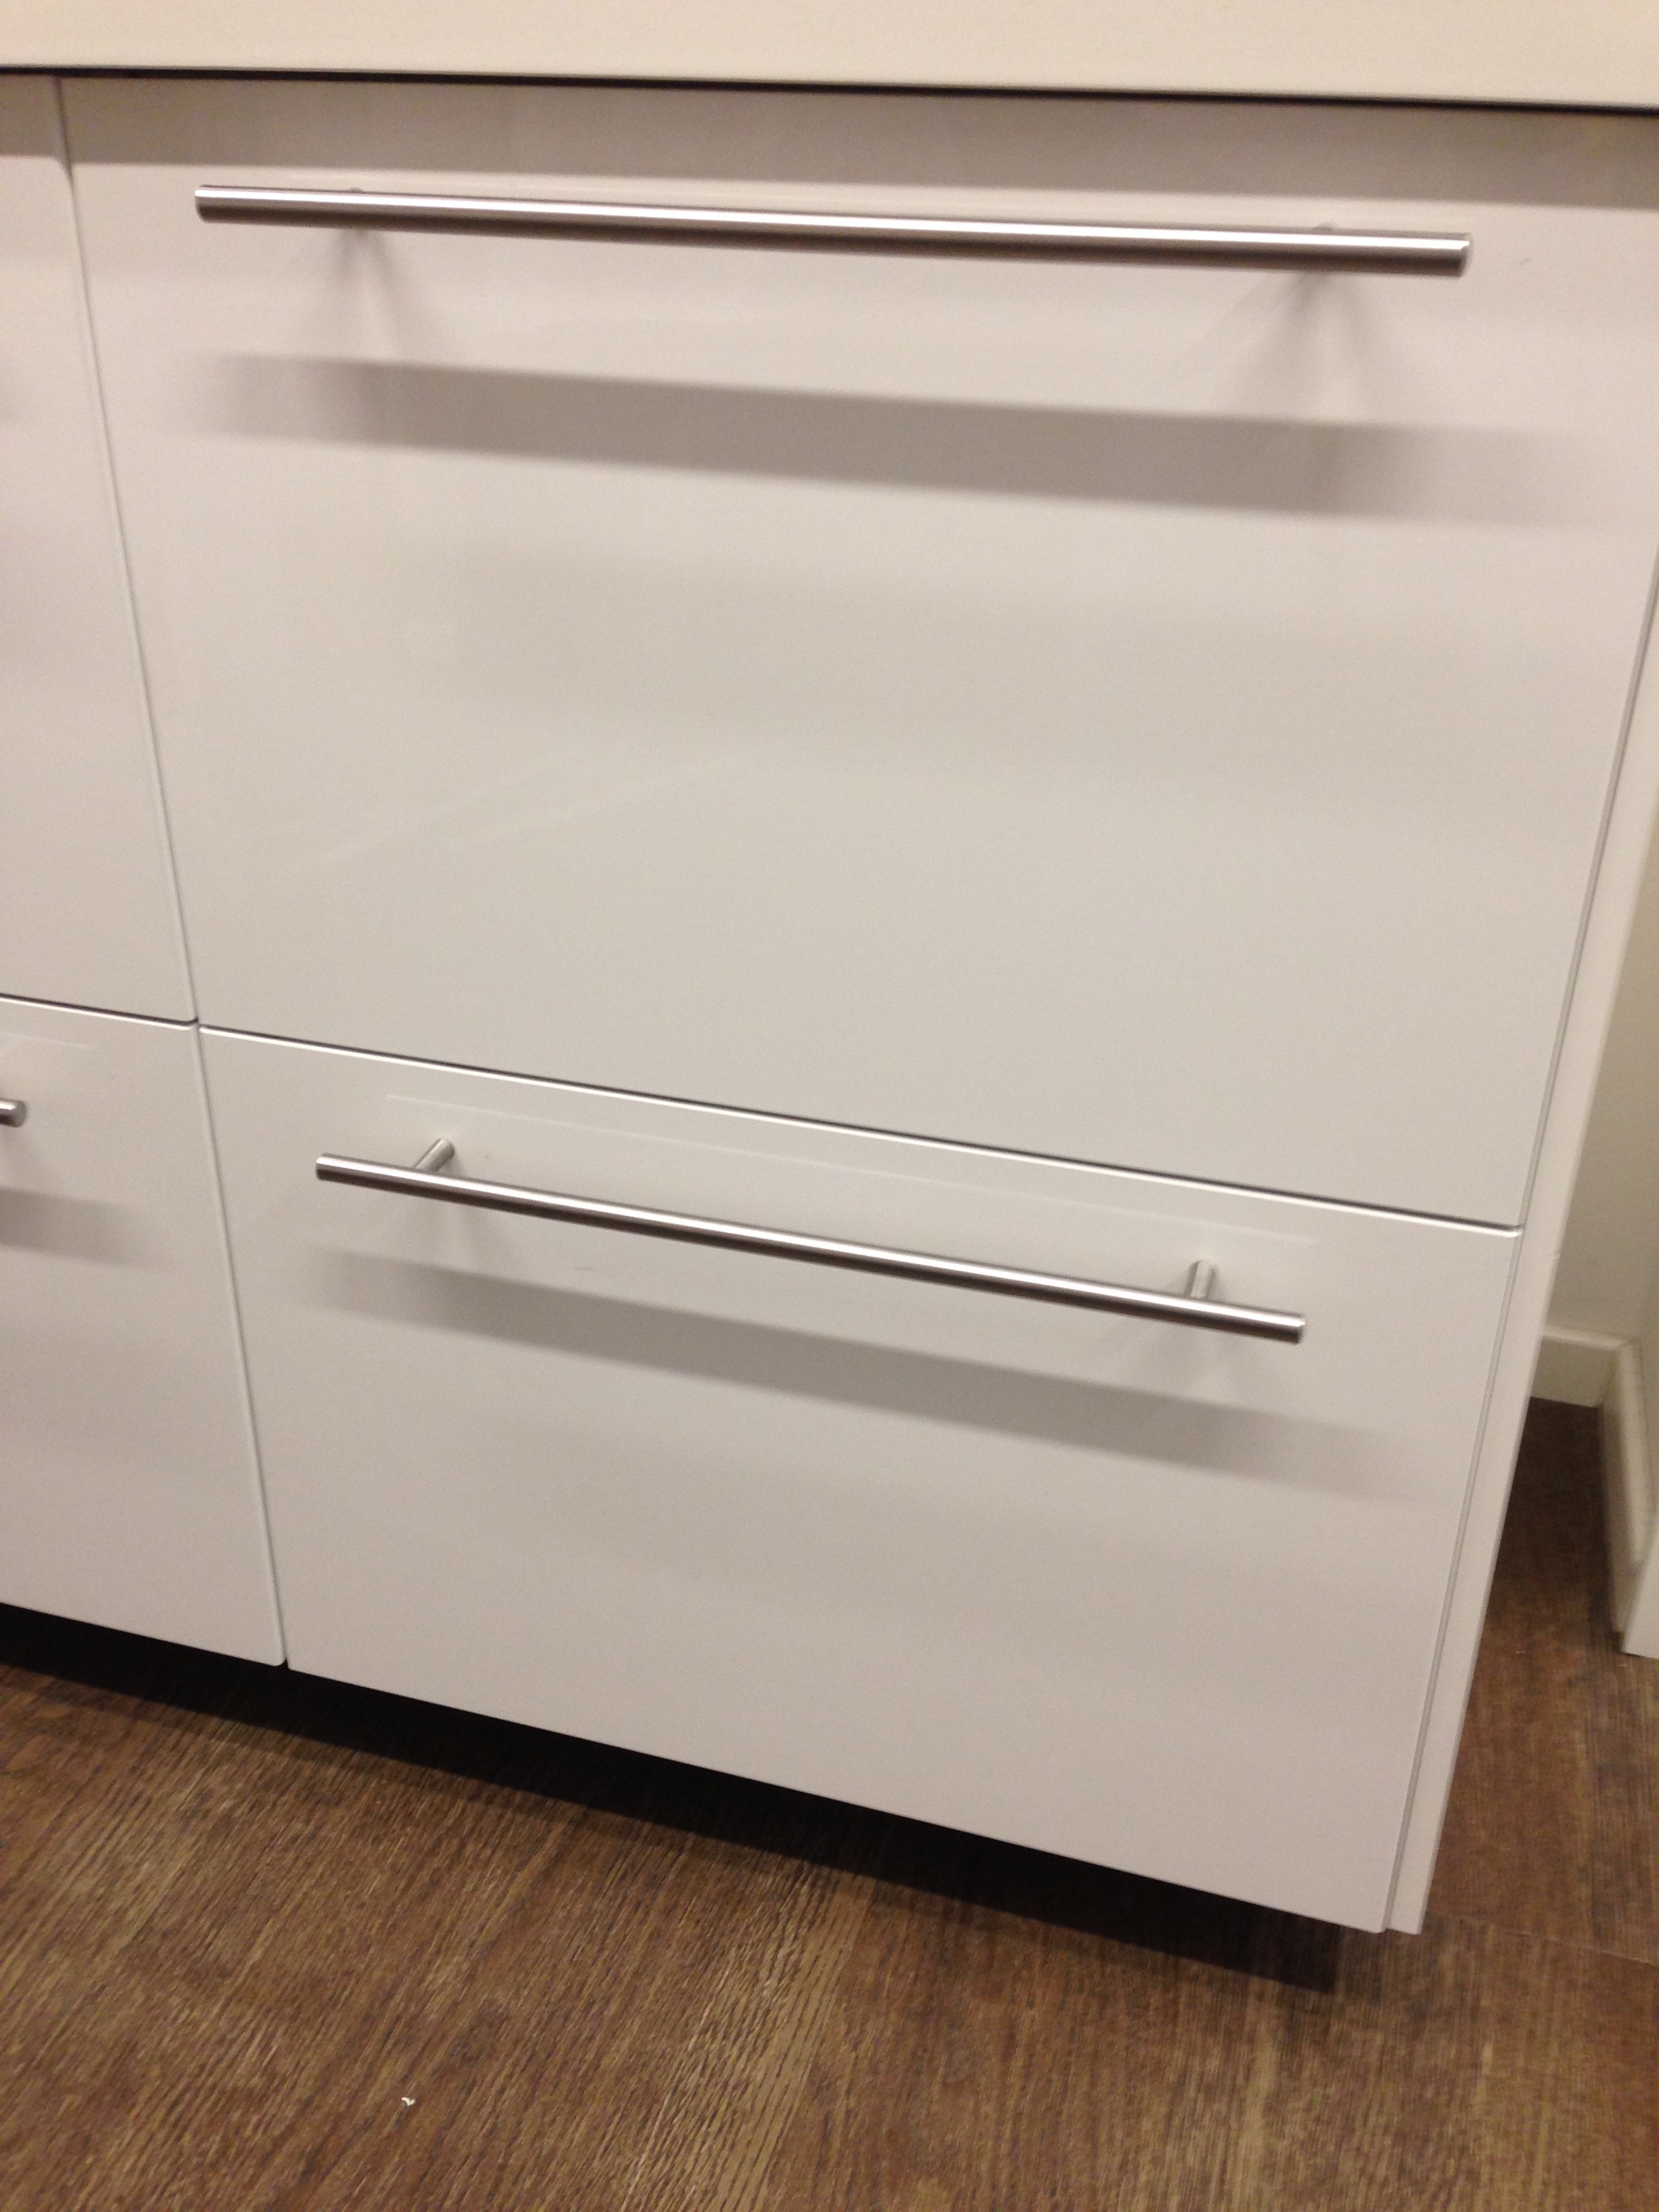 Ringhult Kitchen Cupboard Doors From Ikea In Gloss White With T Regarding White Kitchen Cupboard Doors (View 4 of 25)